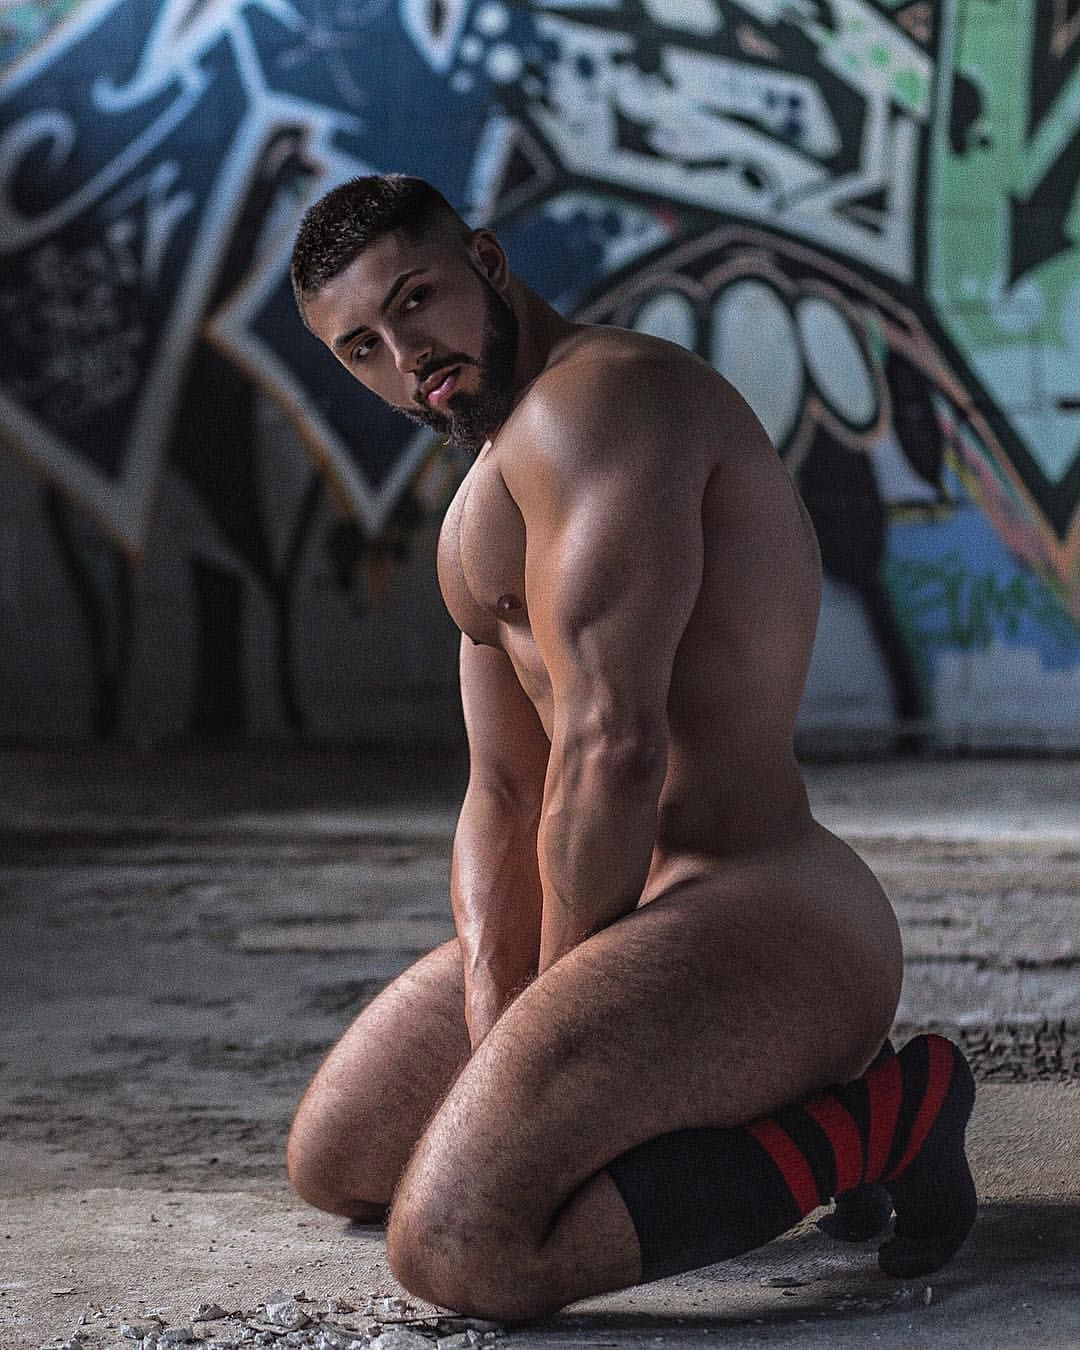 Elias Nohra Nude pinslpm on fitness models and personal trainers in 2019